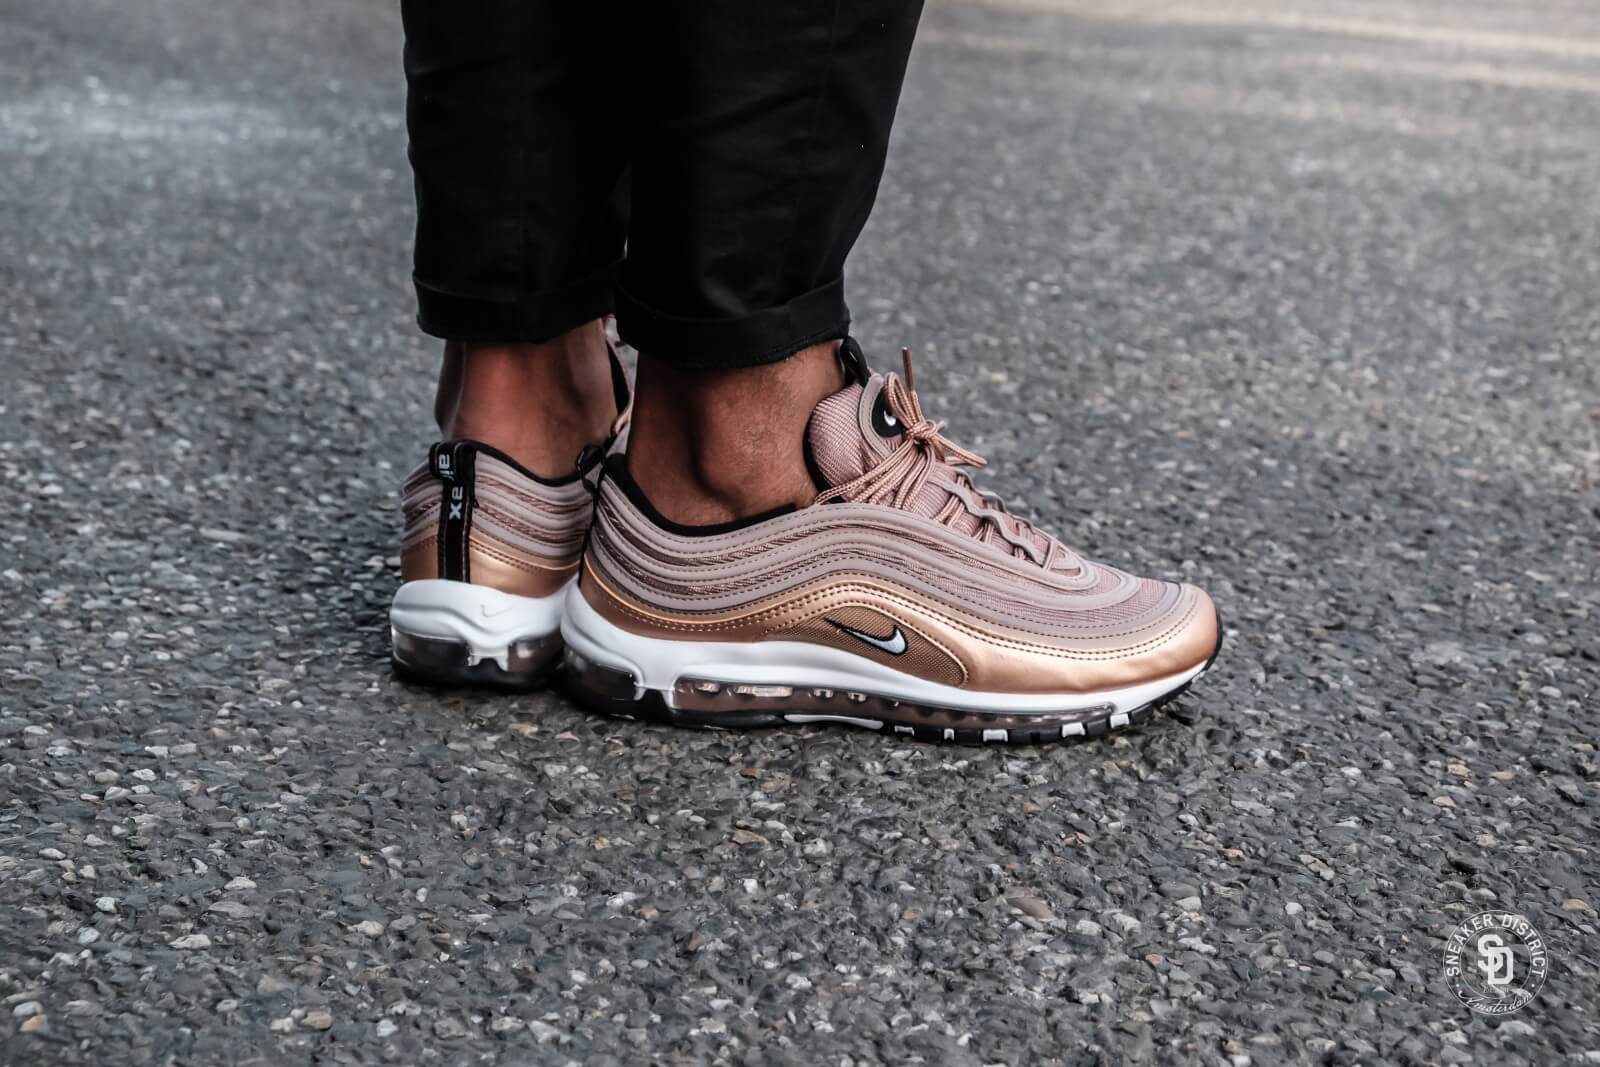 97 Max DustWhite 200 Desert Metallic 921826 Bronze Air Red Nike OPZTuXik